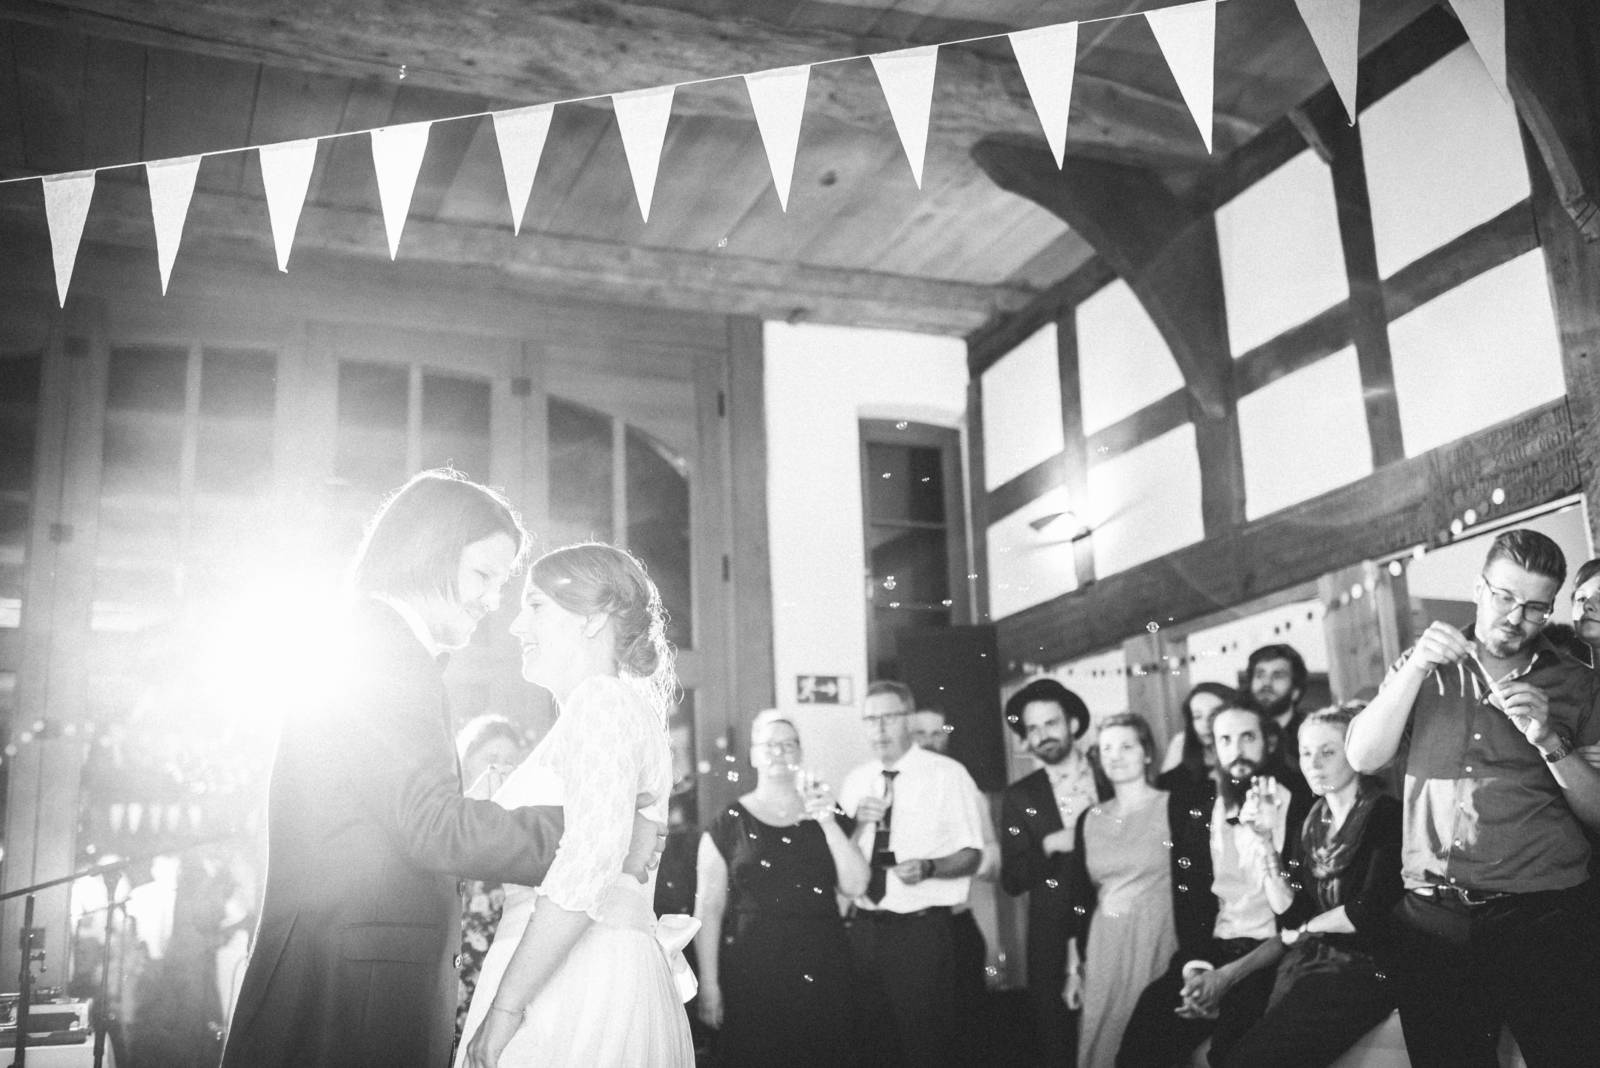 Hochzeitsfotograf Stuttgart Favoriten Hochzeitsbilder Galerie Favoriten Wedding Photographer Stuttgart Bruno Biermann-29